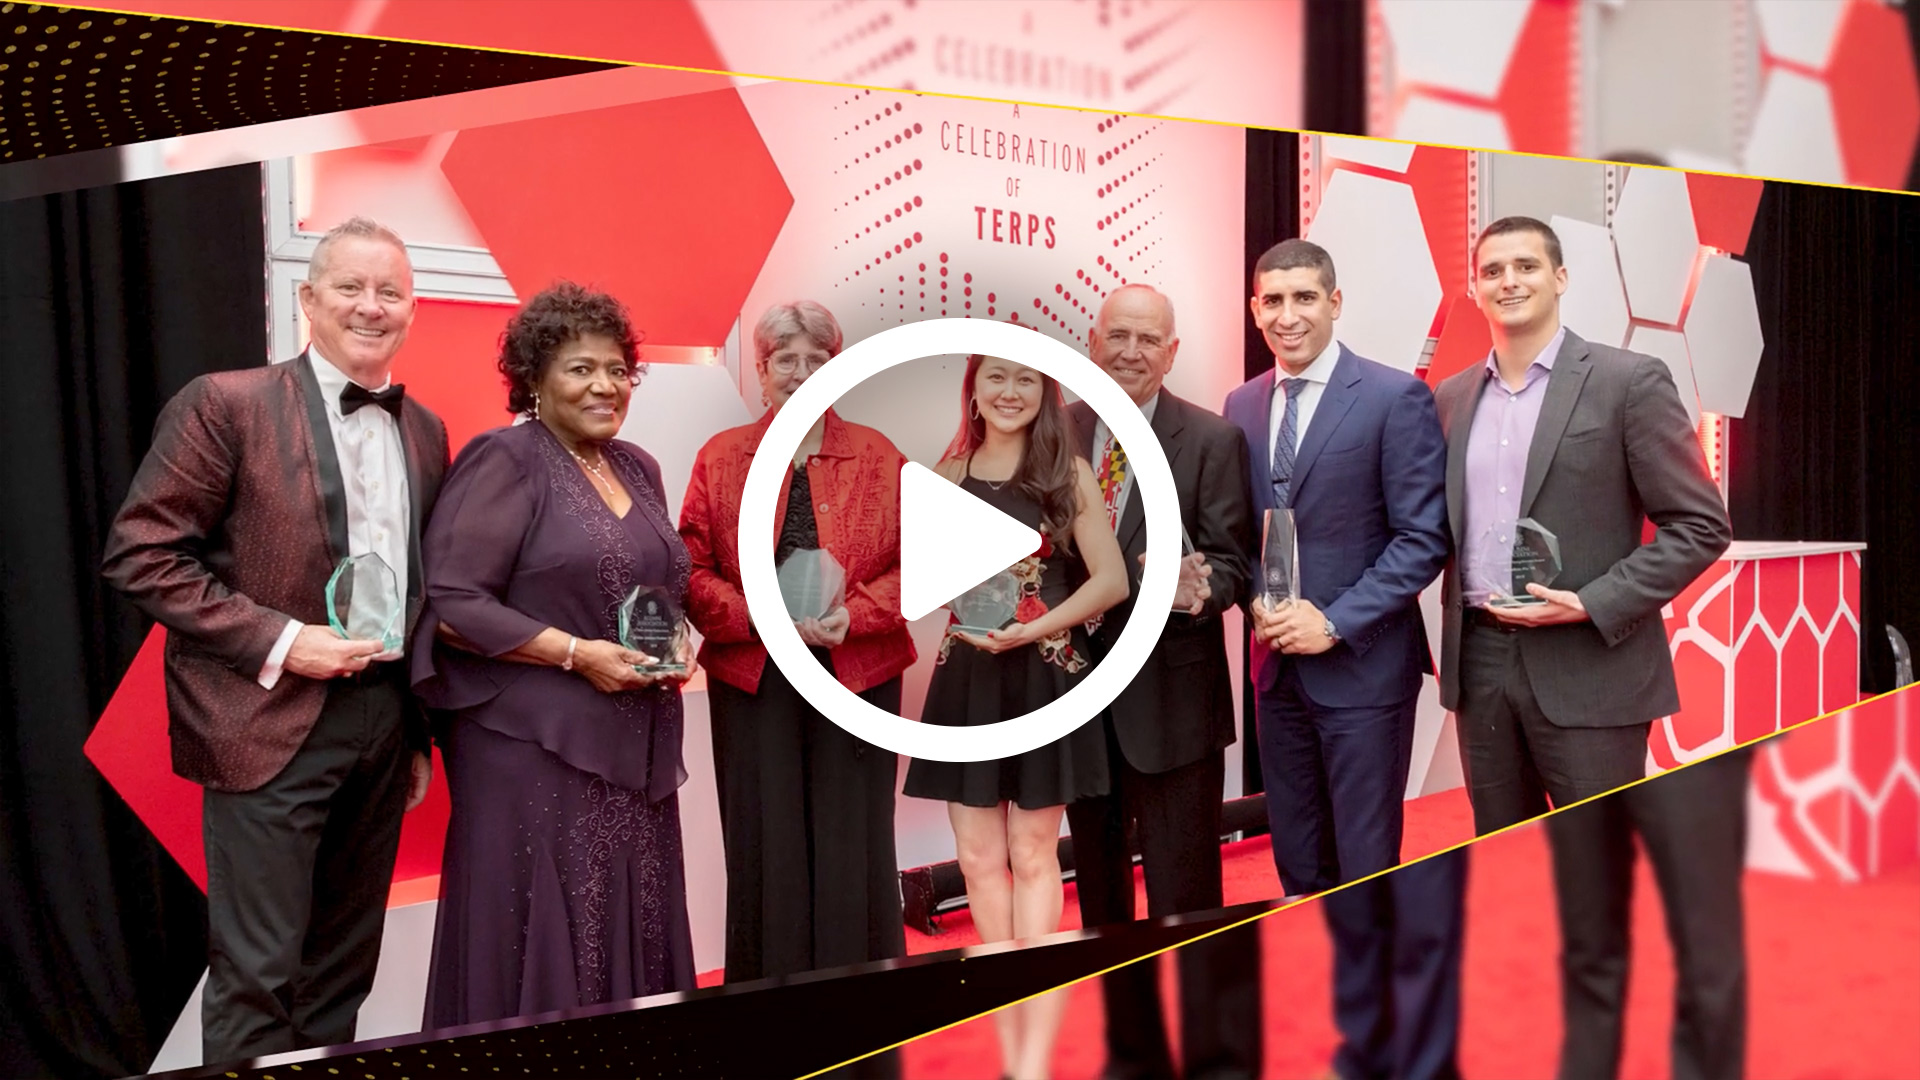 Video for A Celebration of Terps: Featuring The Maryland Awards